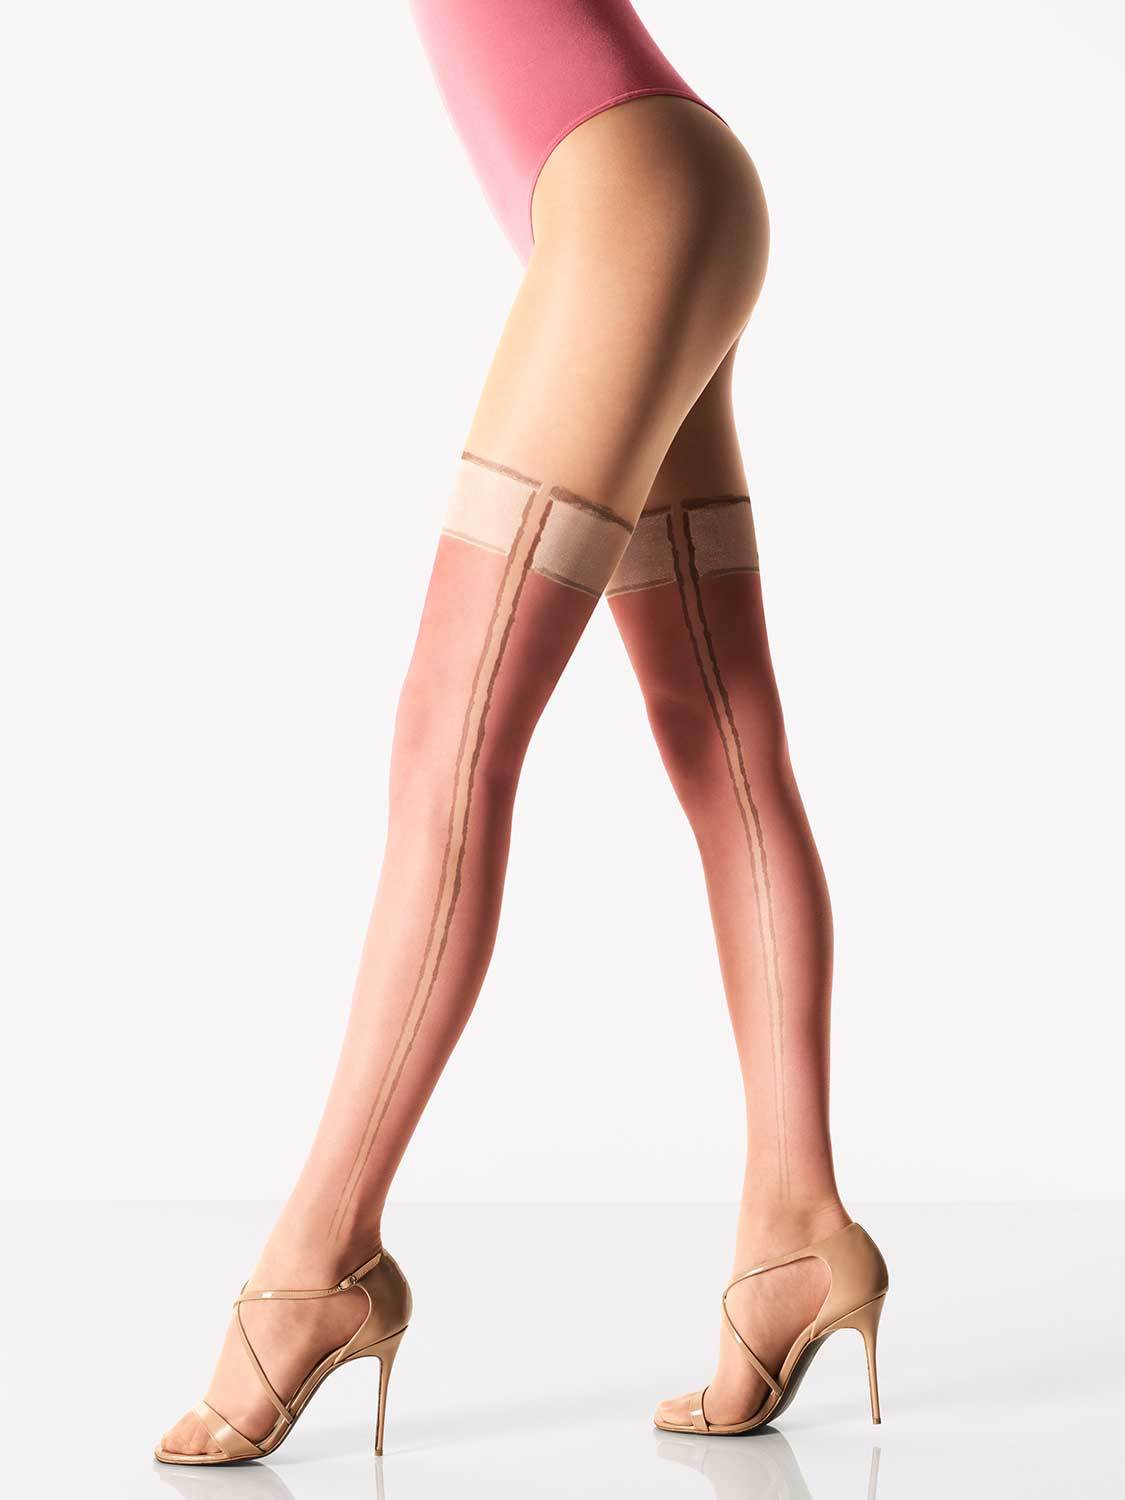 Wolford/ford dingwall d & eacute; grad & eacute; bottoming socks siamese tights pants 14455